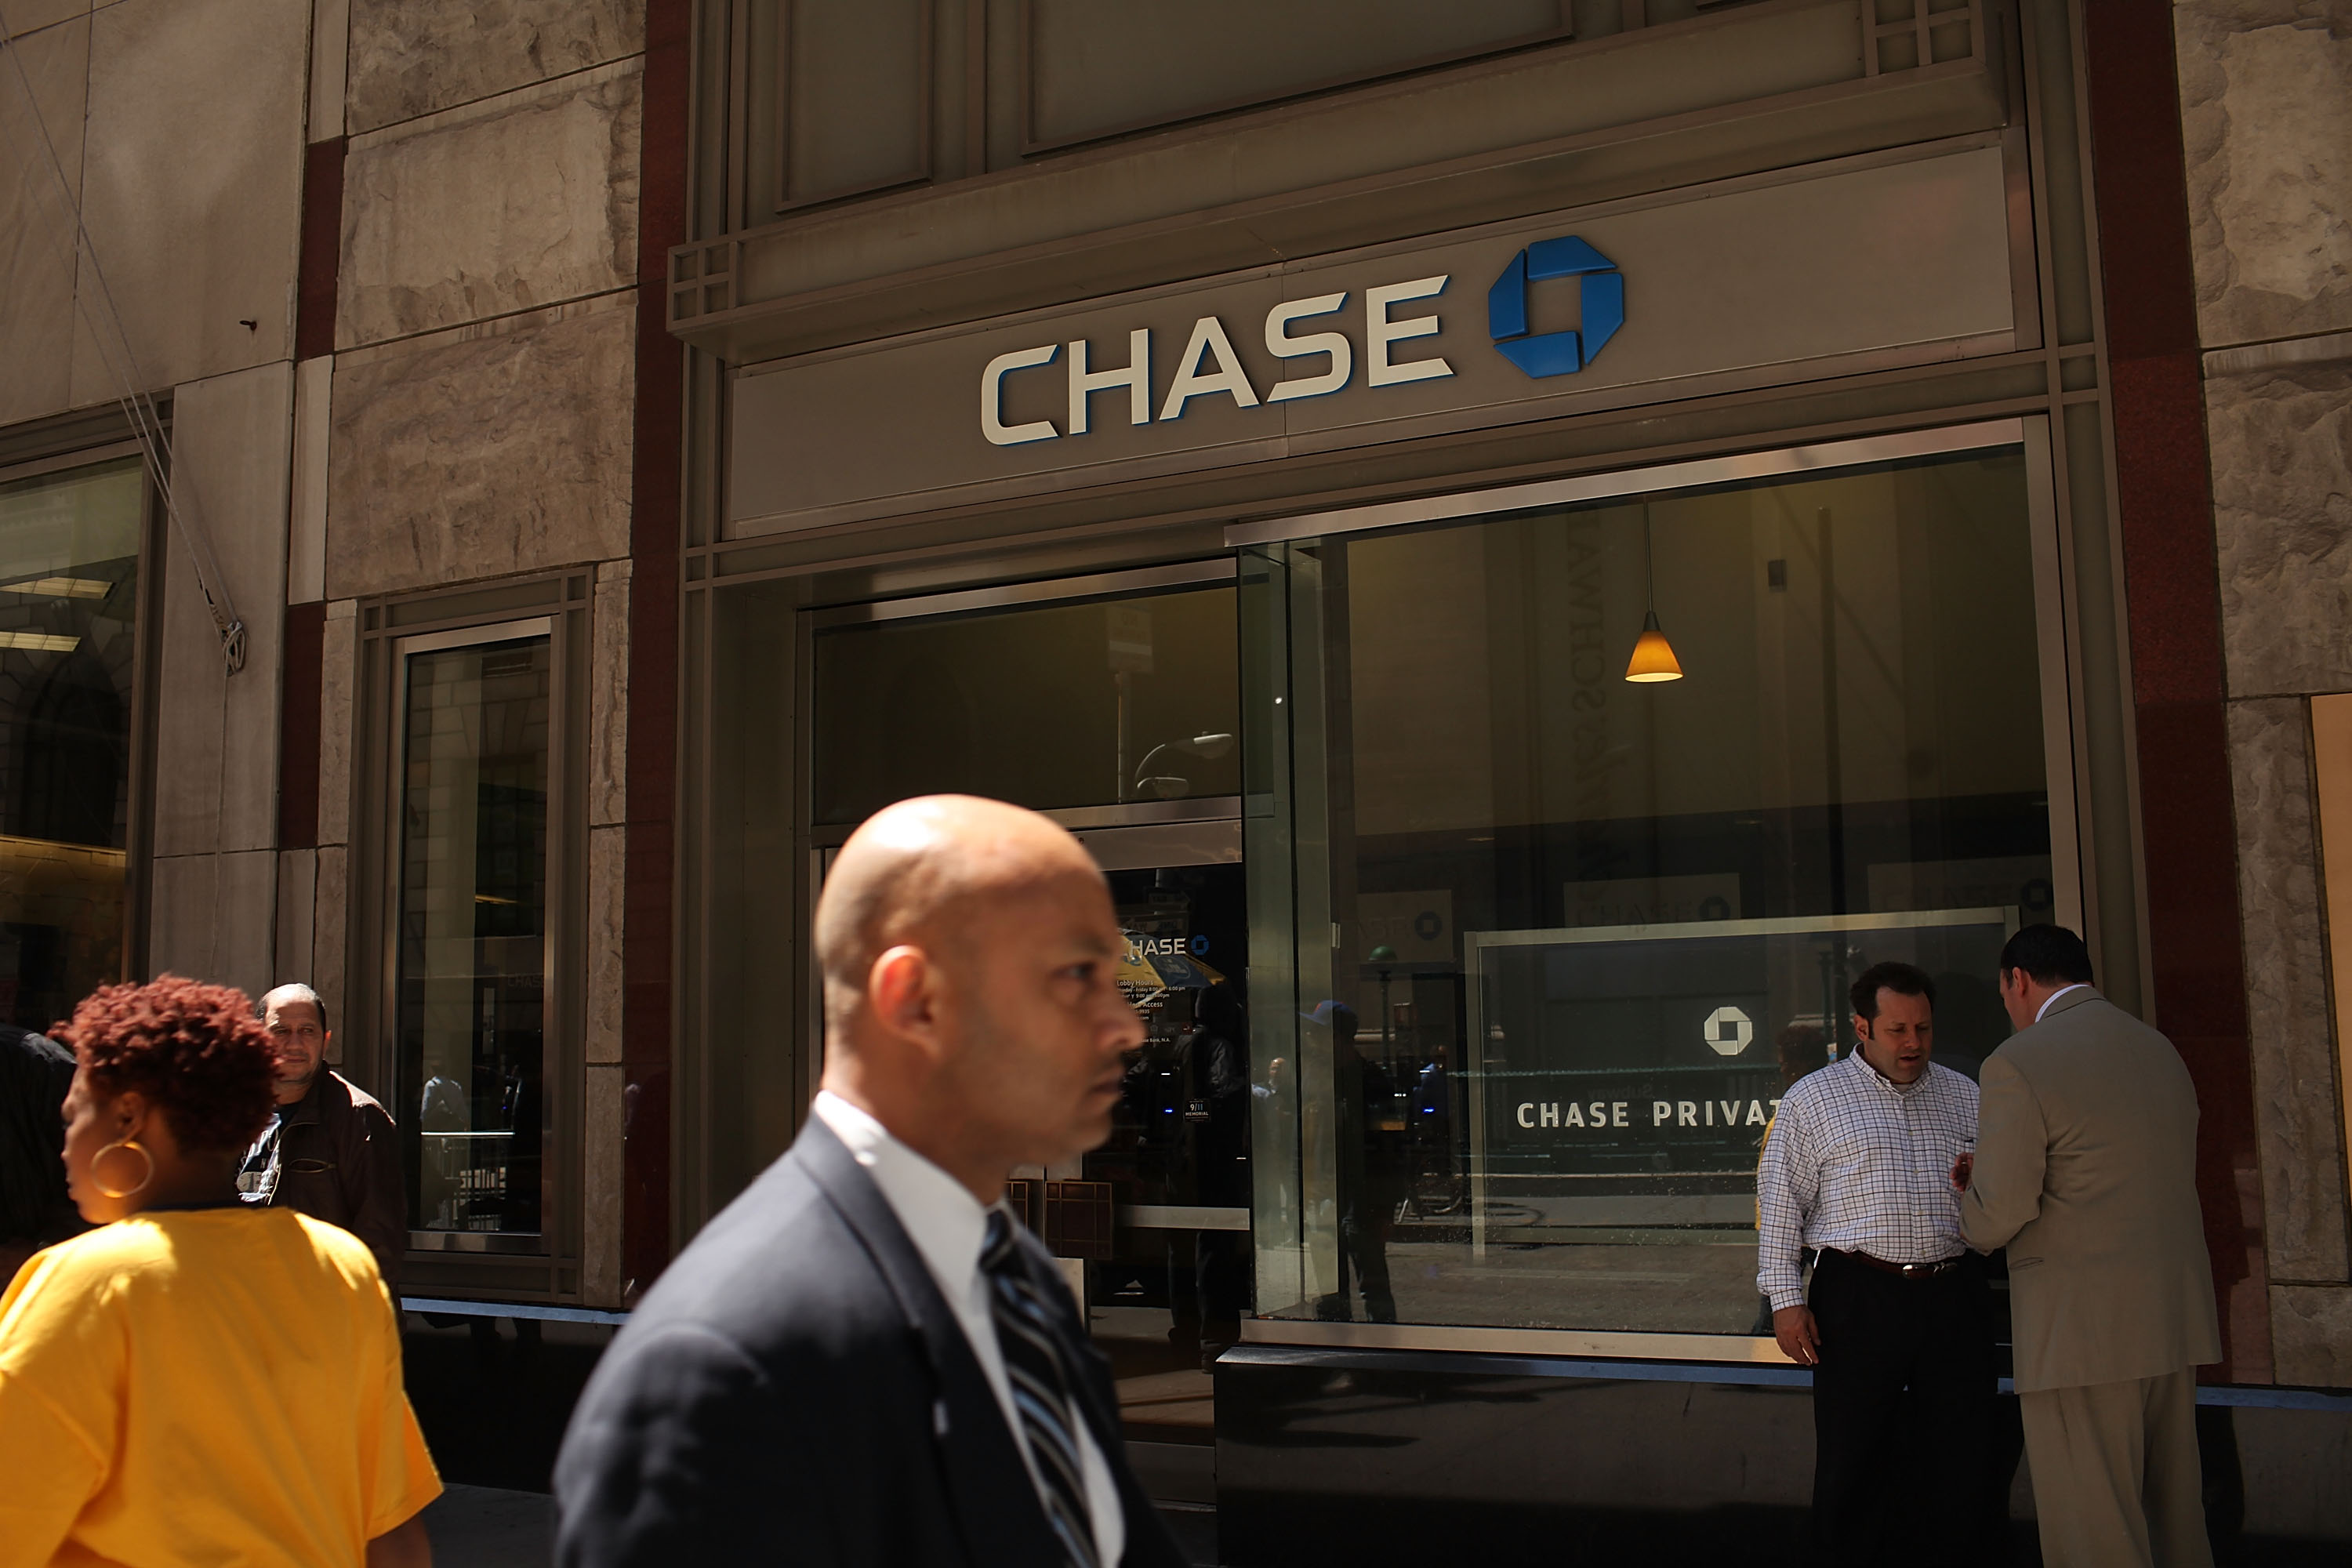 Chase just tried to screw its credit card holders. Here's how you can fight back.